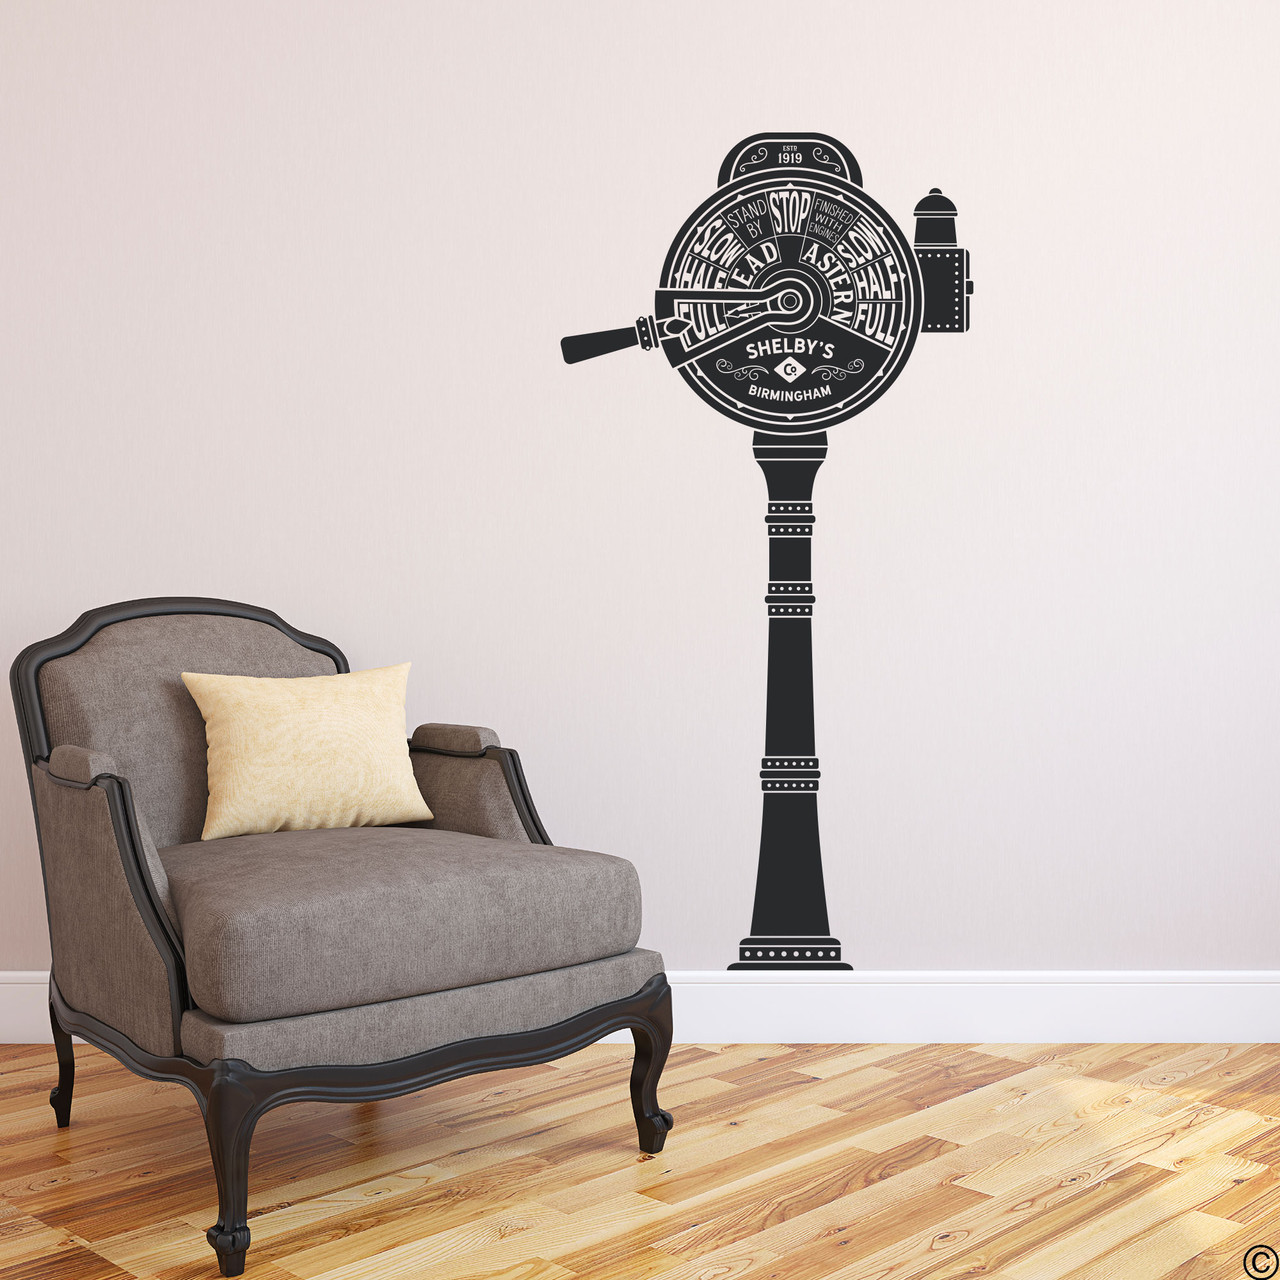 The ship telegraph wall decal shown here in black vinyl color.